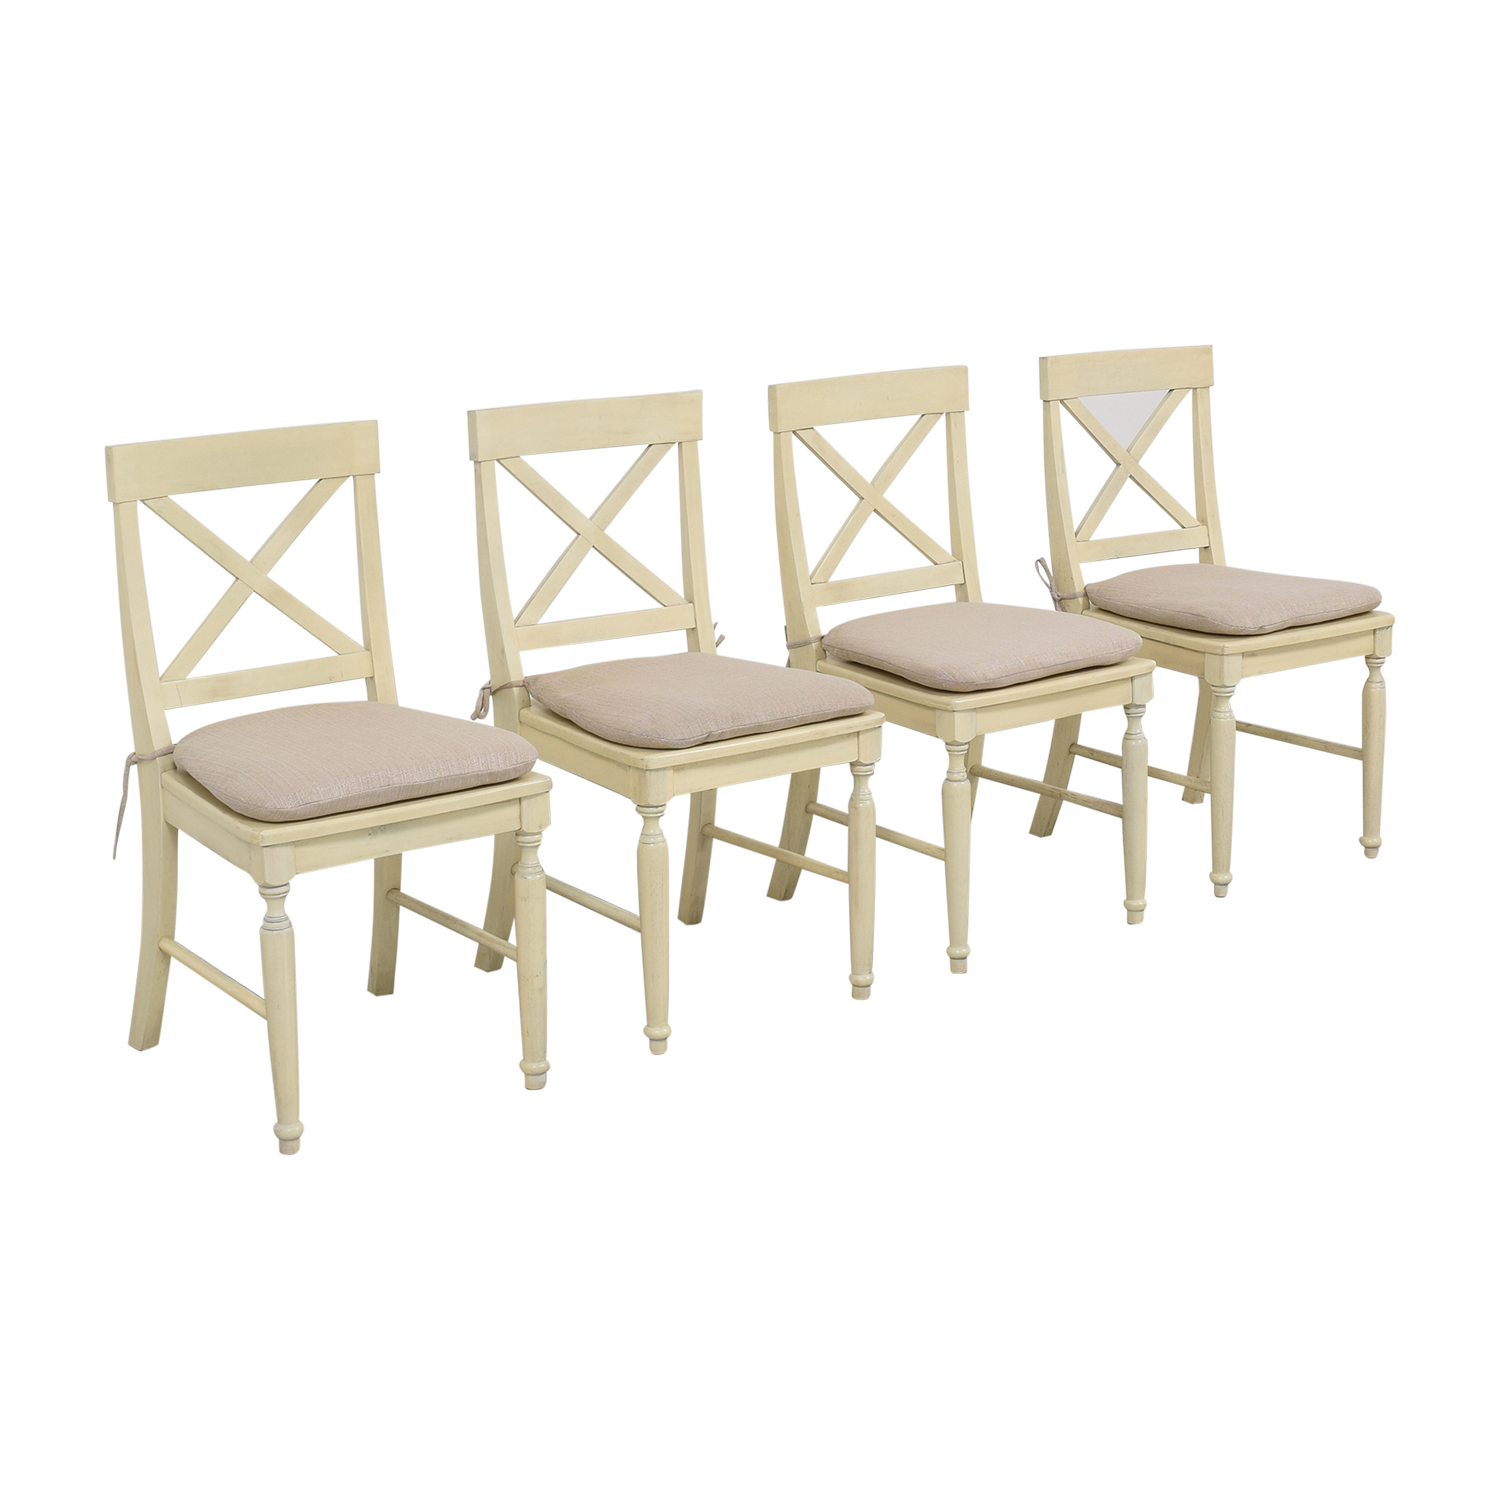 Christopher Knight Home Dining Chairs sale